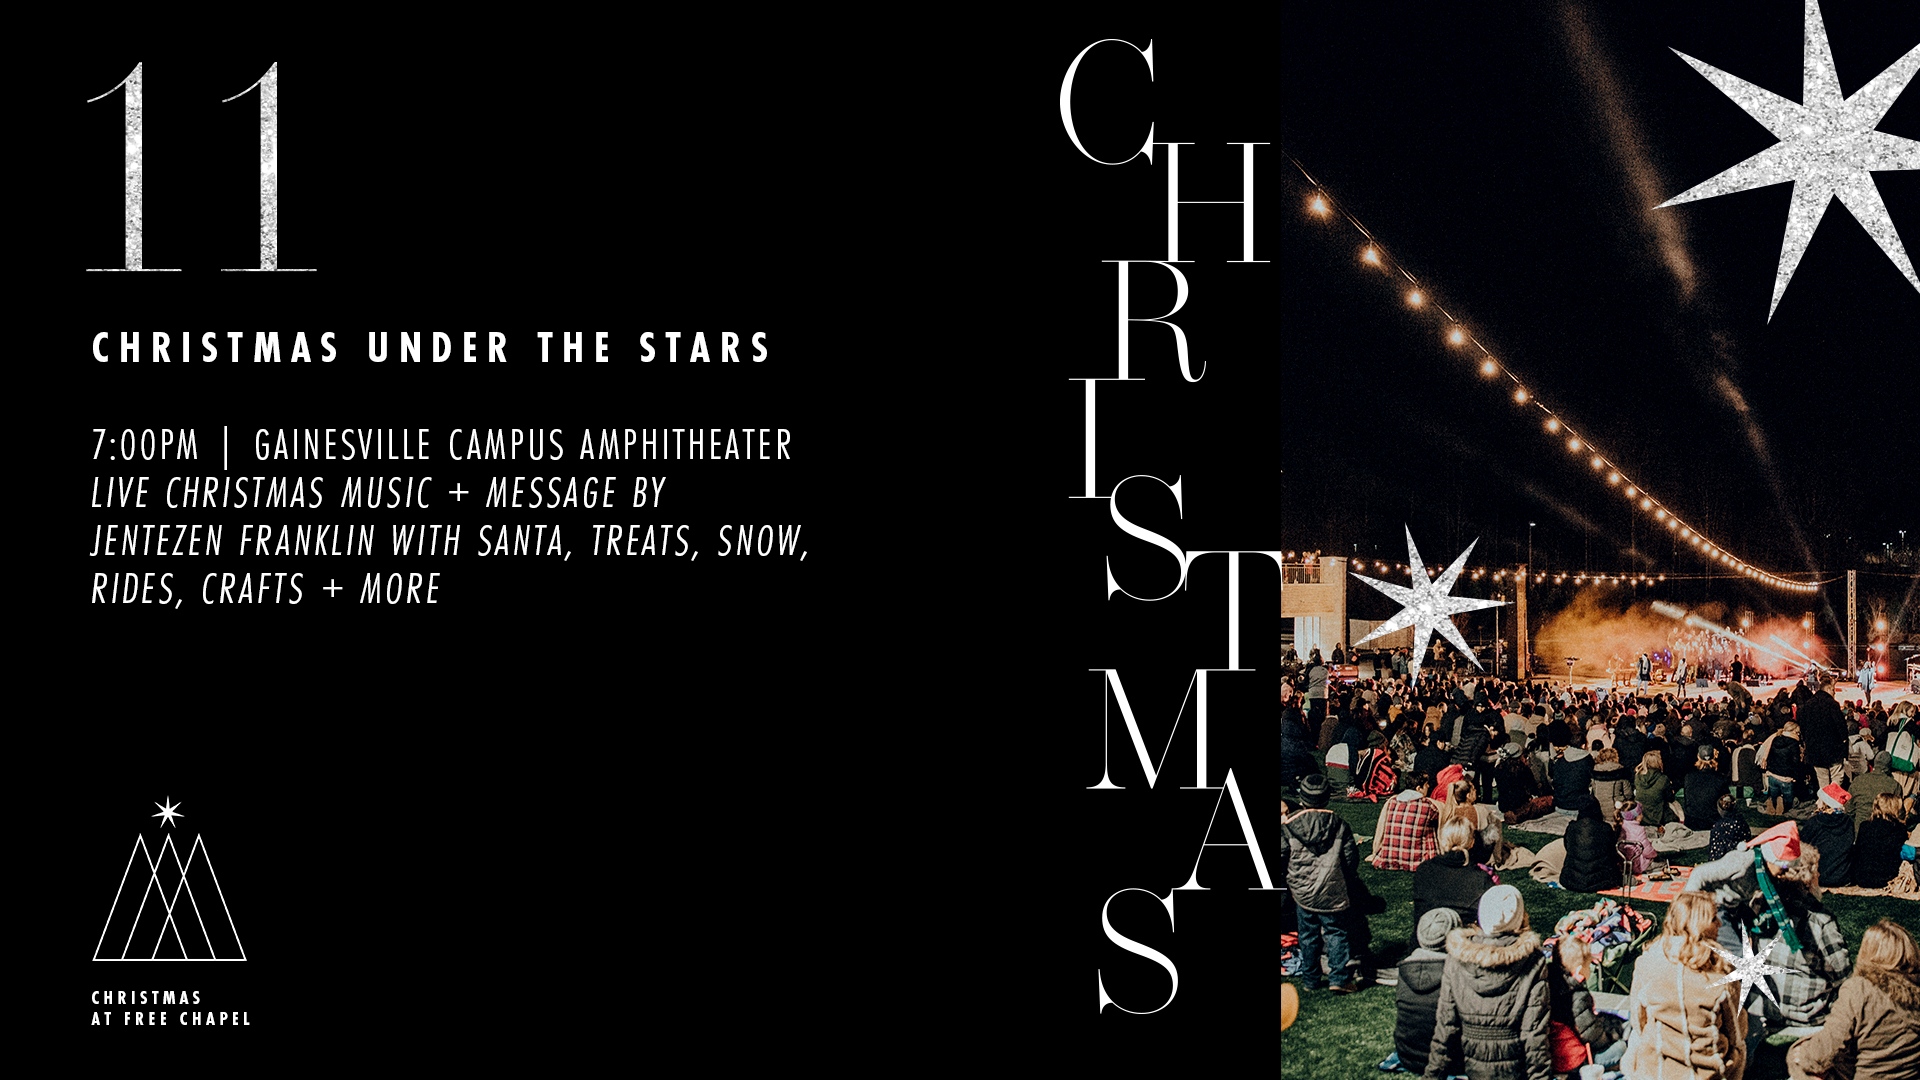 Christmas Under The Stars at the Buford campus